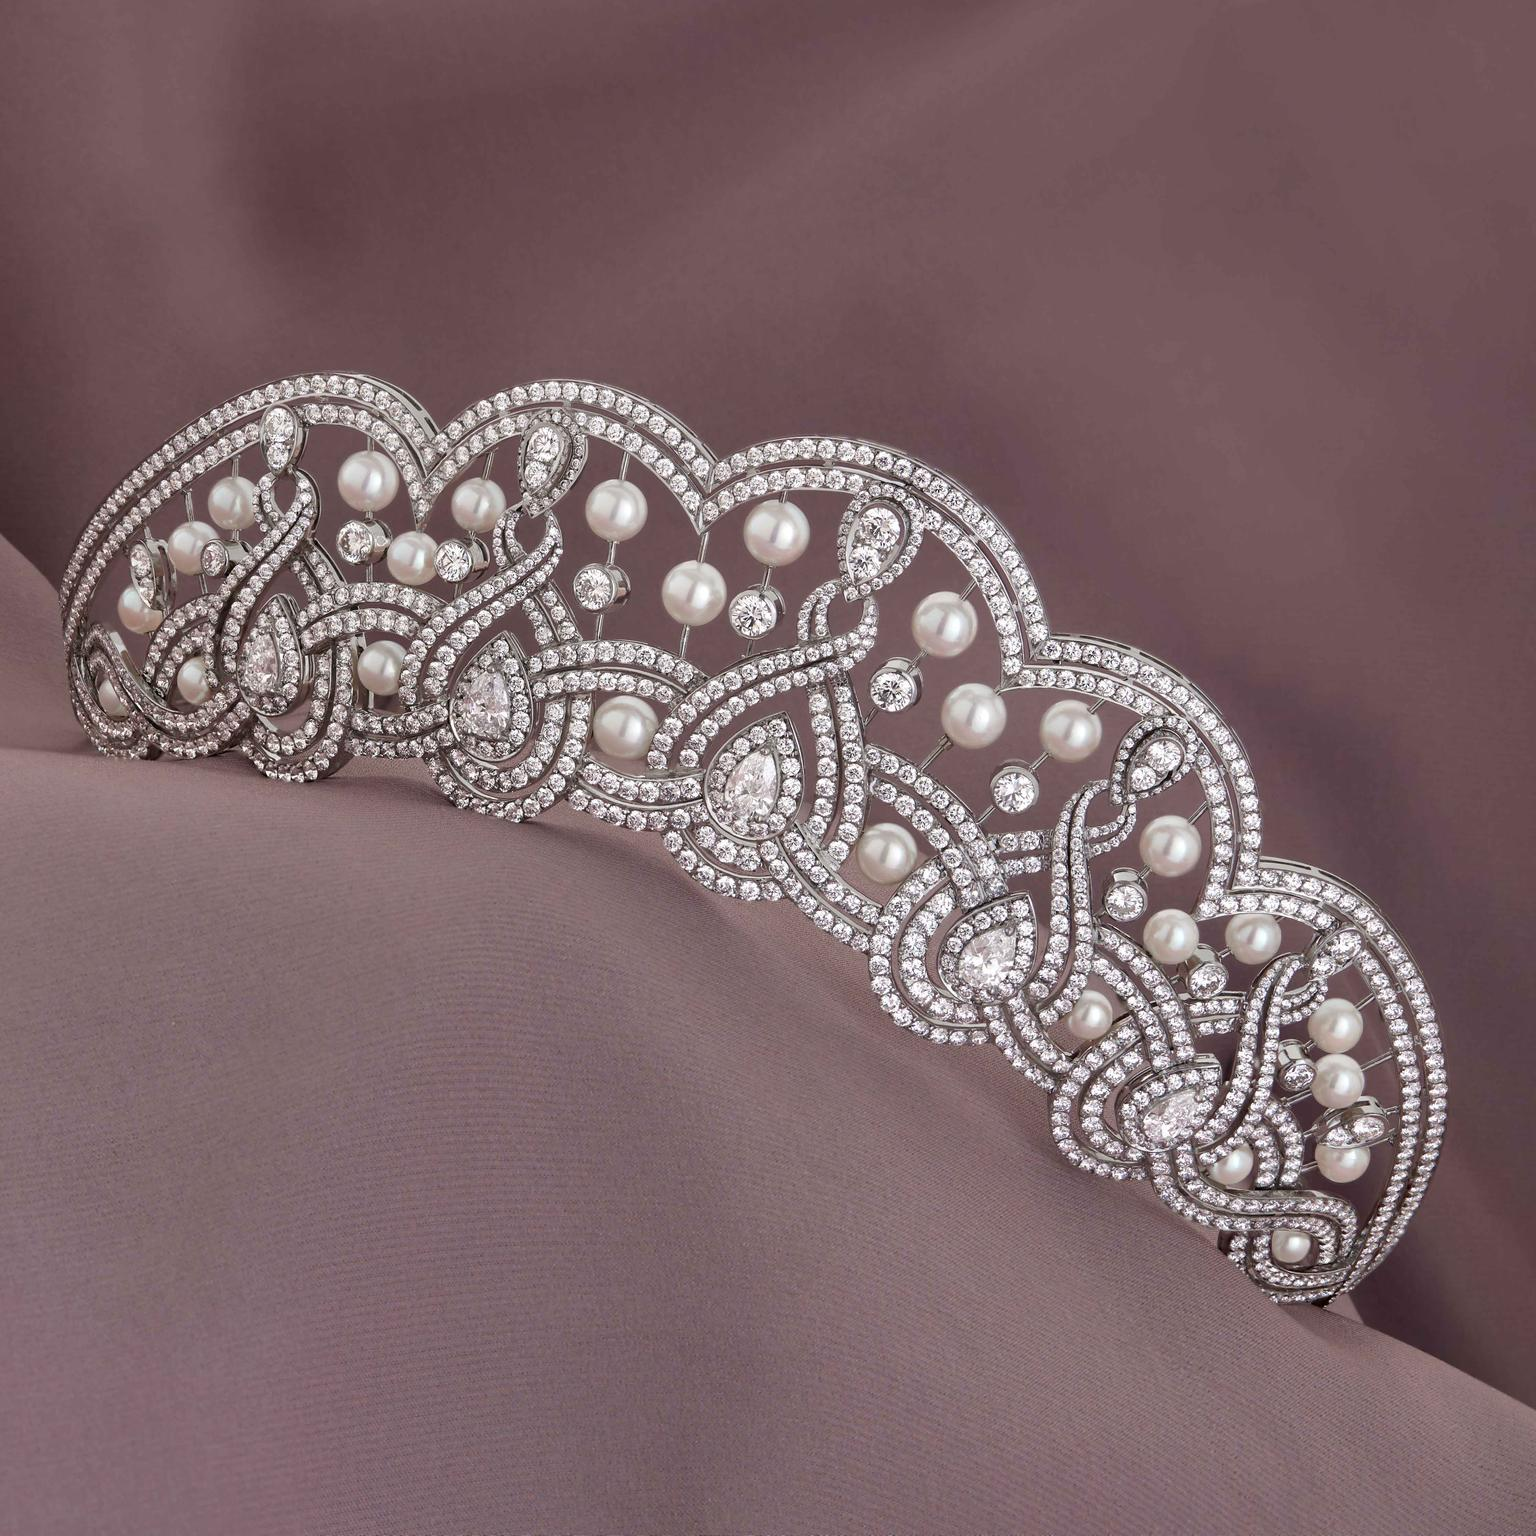 Garland tiara by Garrard